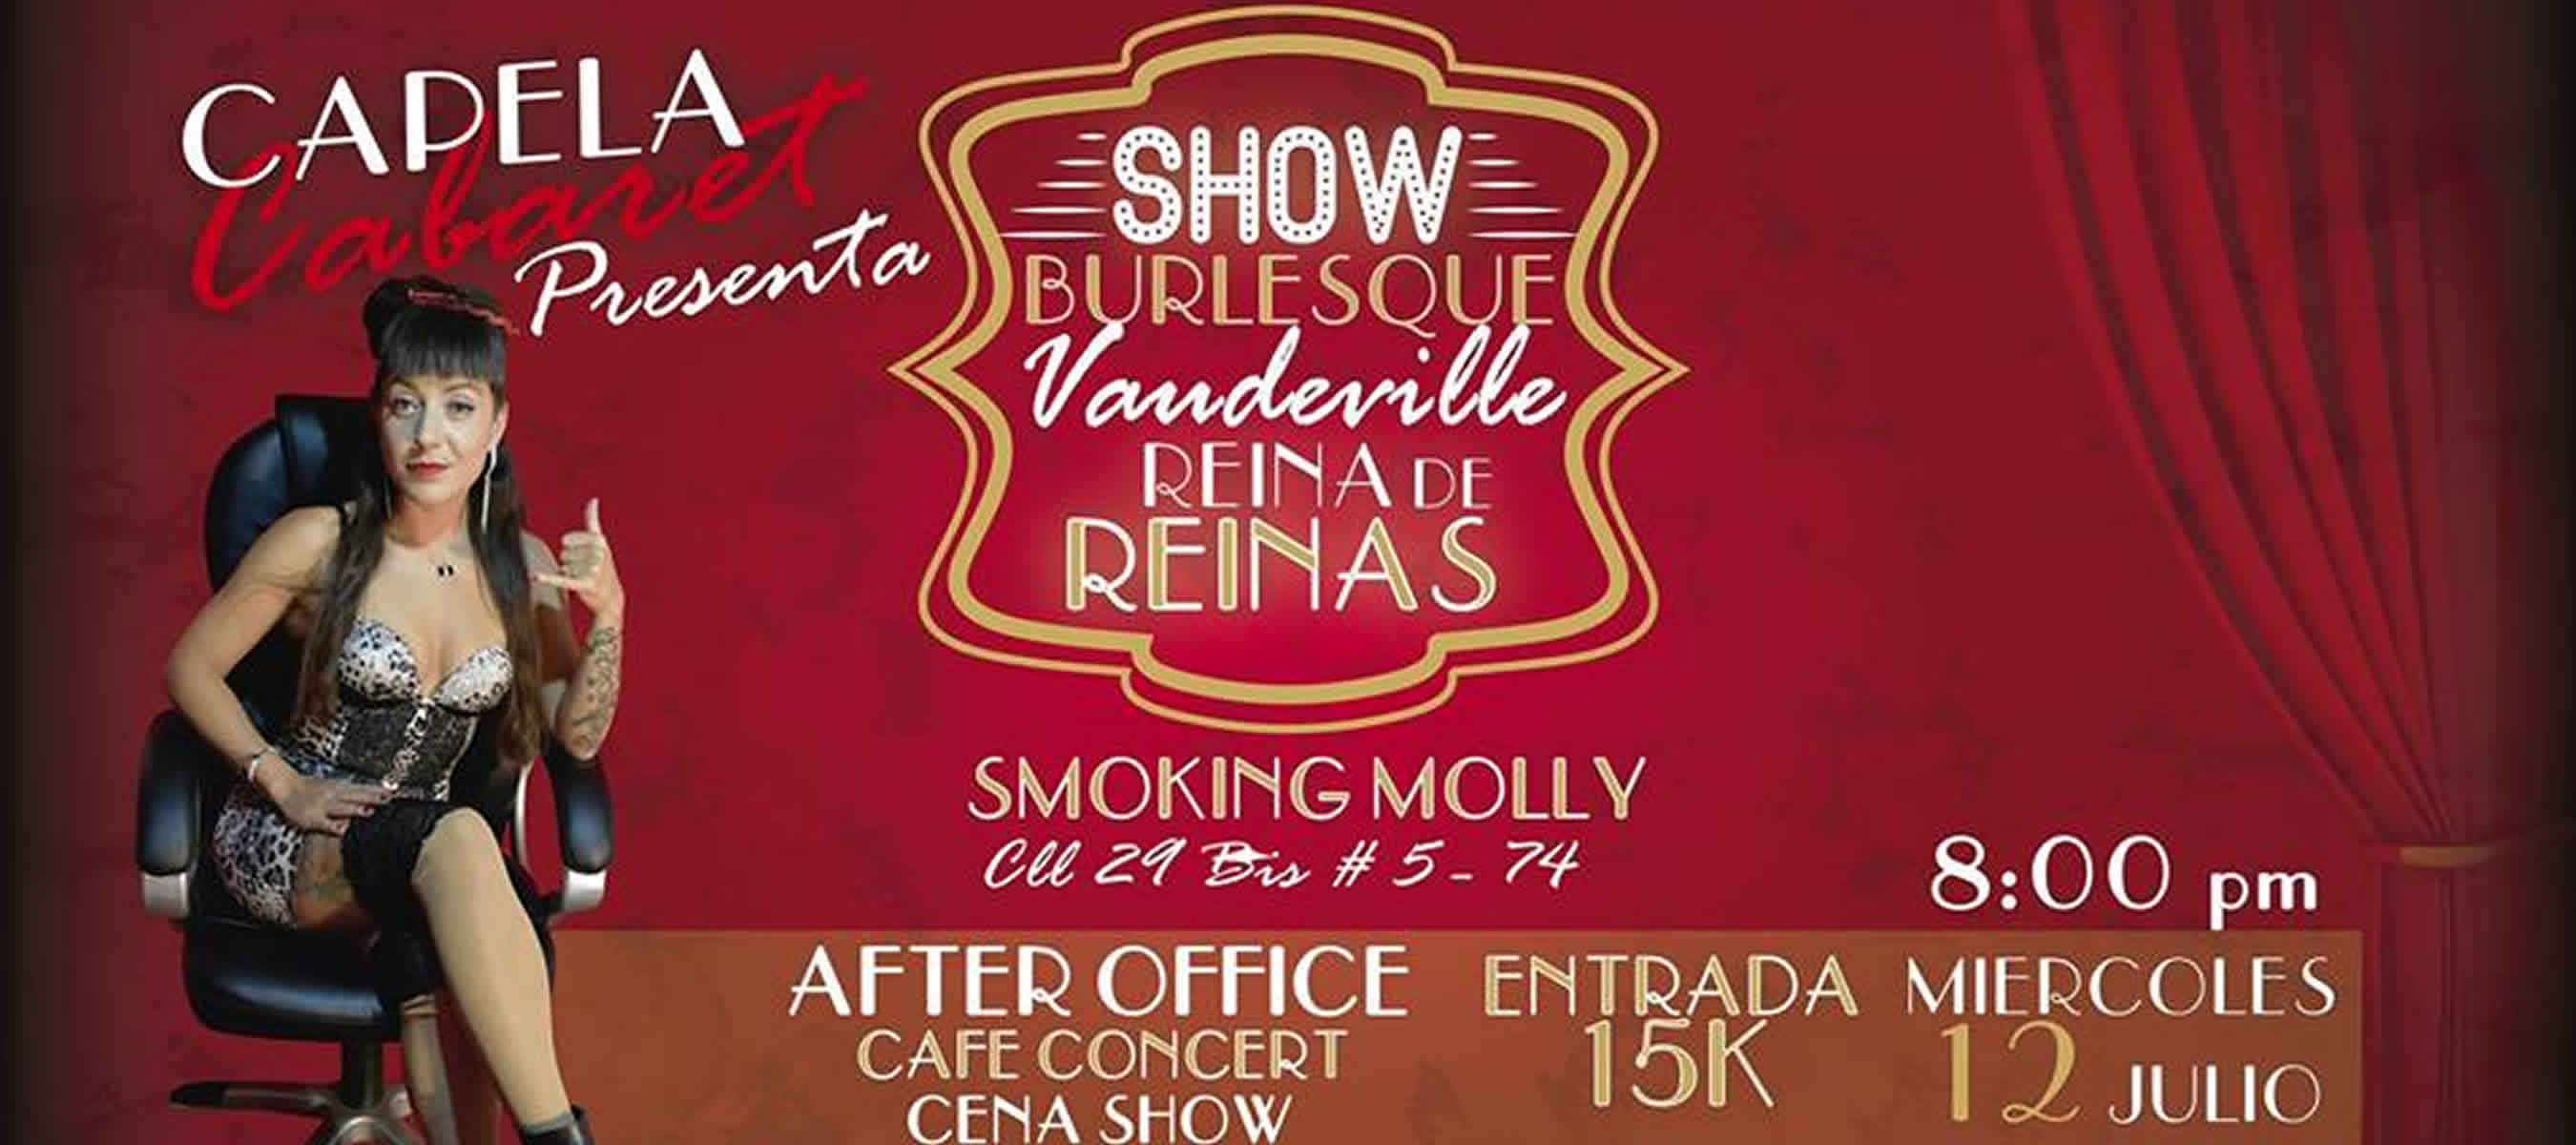 Capela cabaret en smoking molly